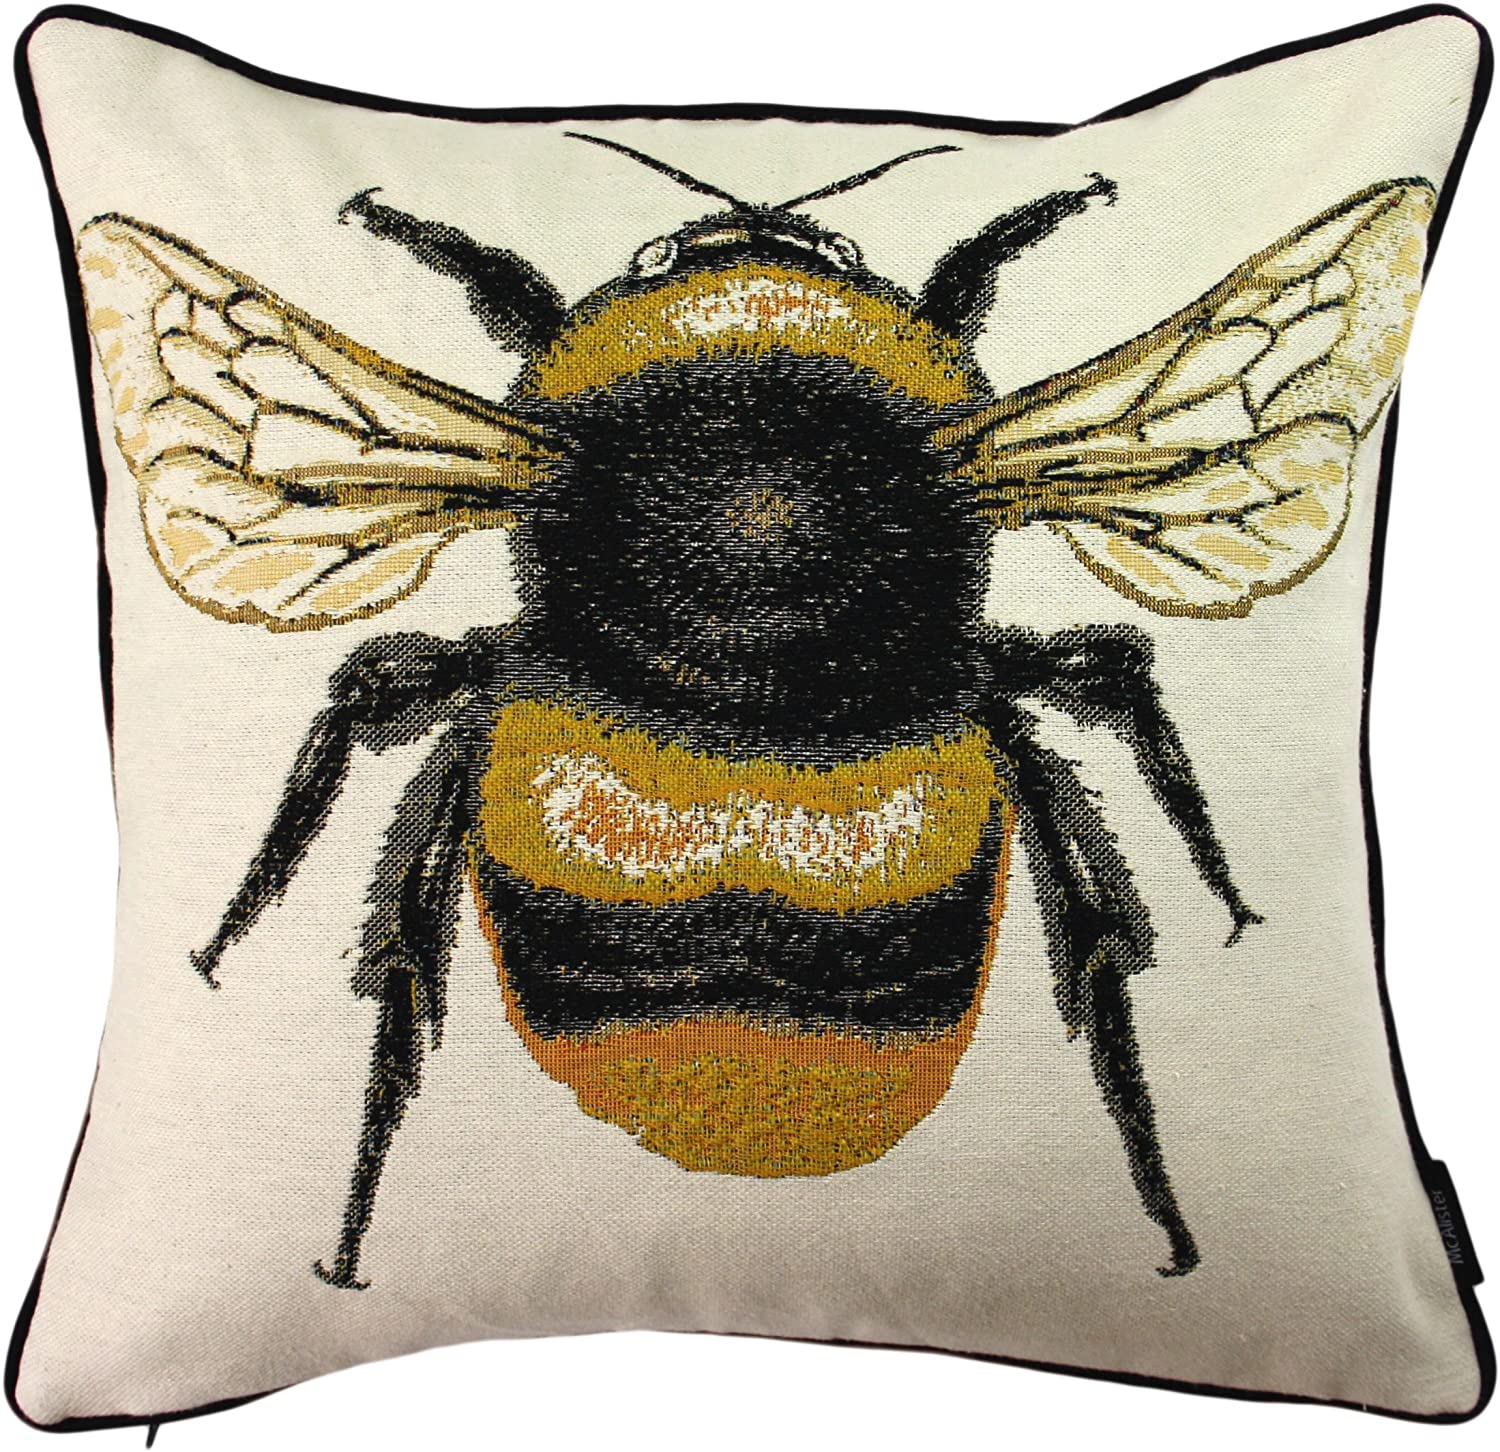 Mcalister Textiles Queen Bee Bug 43cm Cushion Cover Yellow Black Fun Tapestry Insect Heavyweight Embroidered Decorative Home Accessories Throw Pillow For Bedroom Sofa Living Room Accessory 17 Inches Amazon Co Uk Kitchen